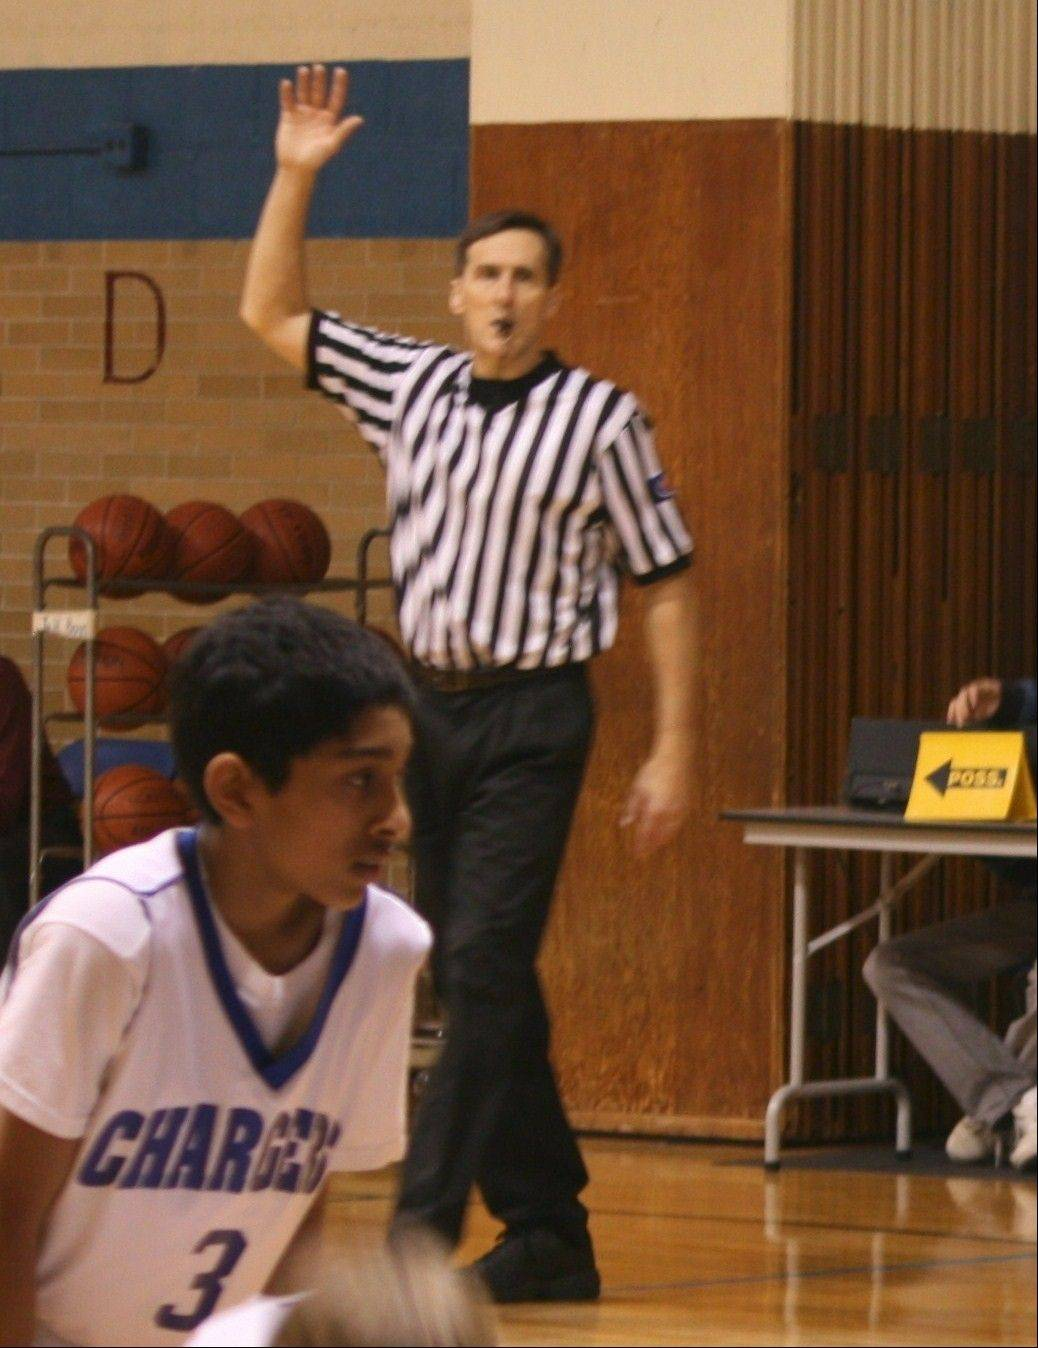 Bill Spicer officiating a game at Christian Liberty Academy.